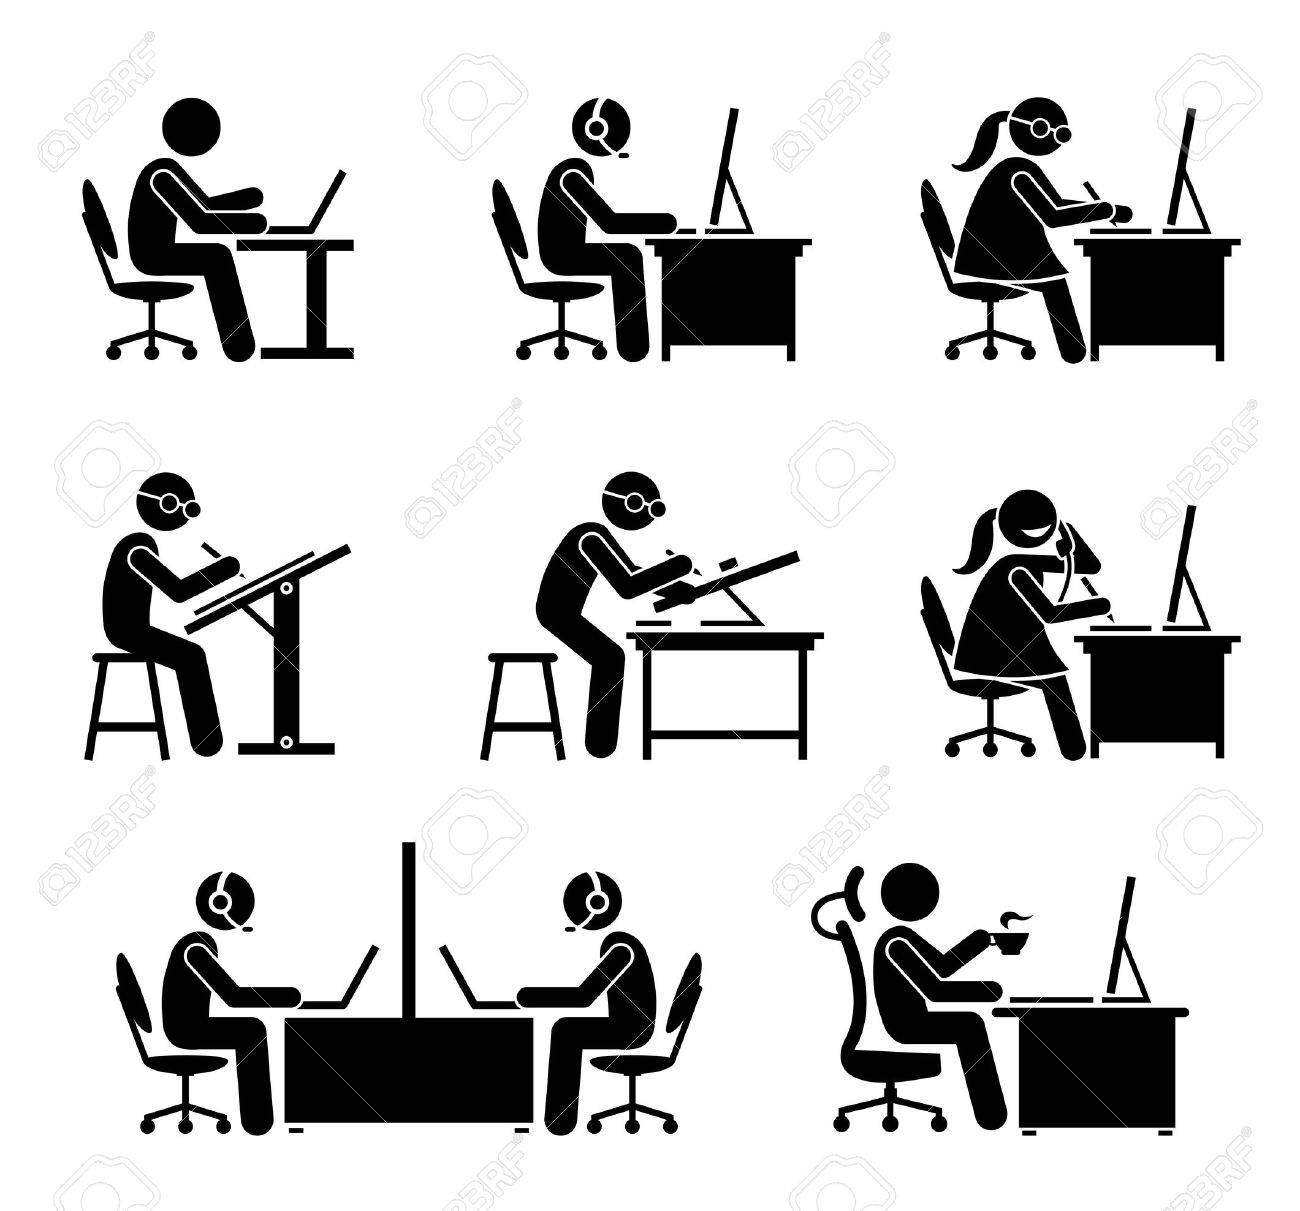 Employee working with computer and laptop at office. These jobs include programmer, software engineer, support, call center, customer service, secretary, helpdesk, receptionist, , and CEO. - 69593895